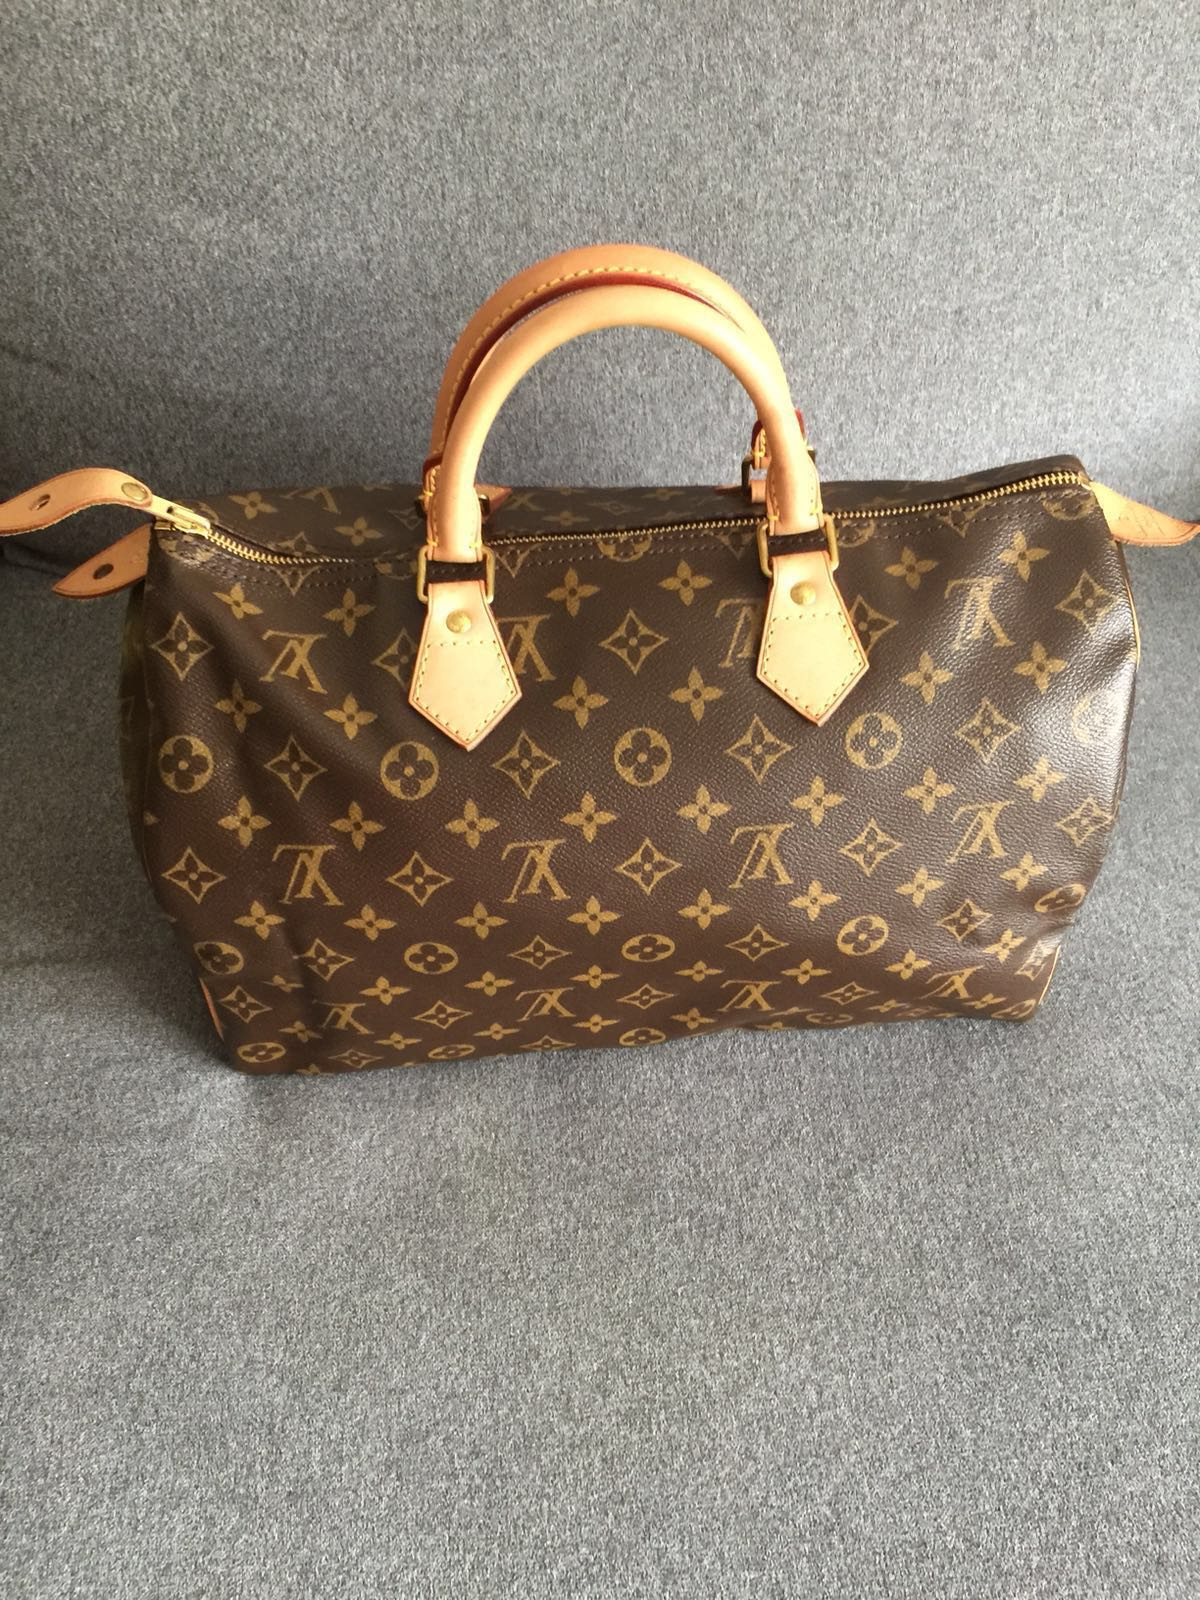 b5bd491328be LIKE NEW-LV Louis Vuitton Speedy 35 Monogram in Box